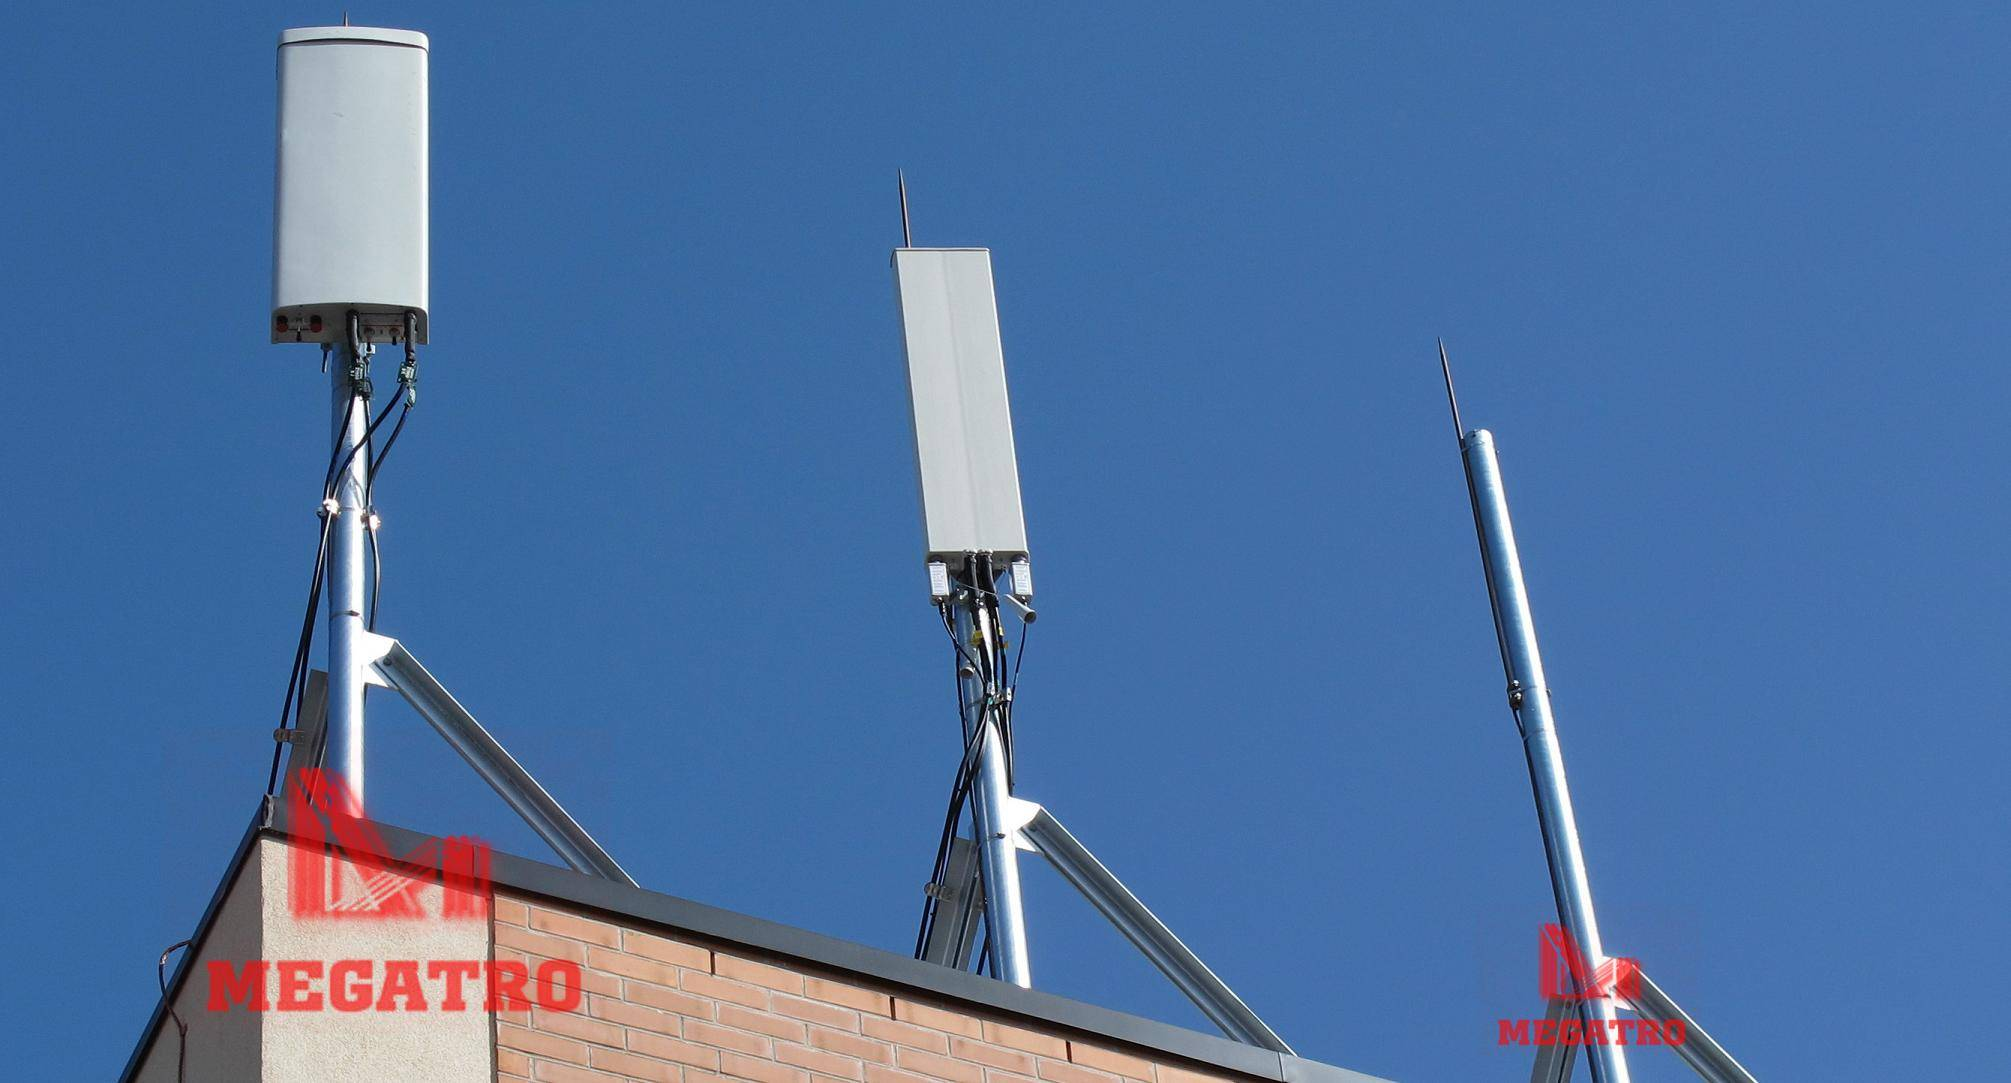 Mounting pole for telecom antenna